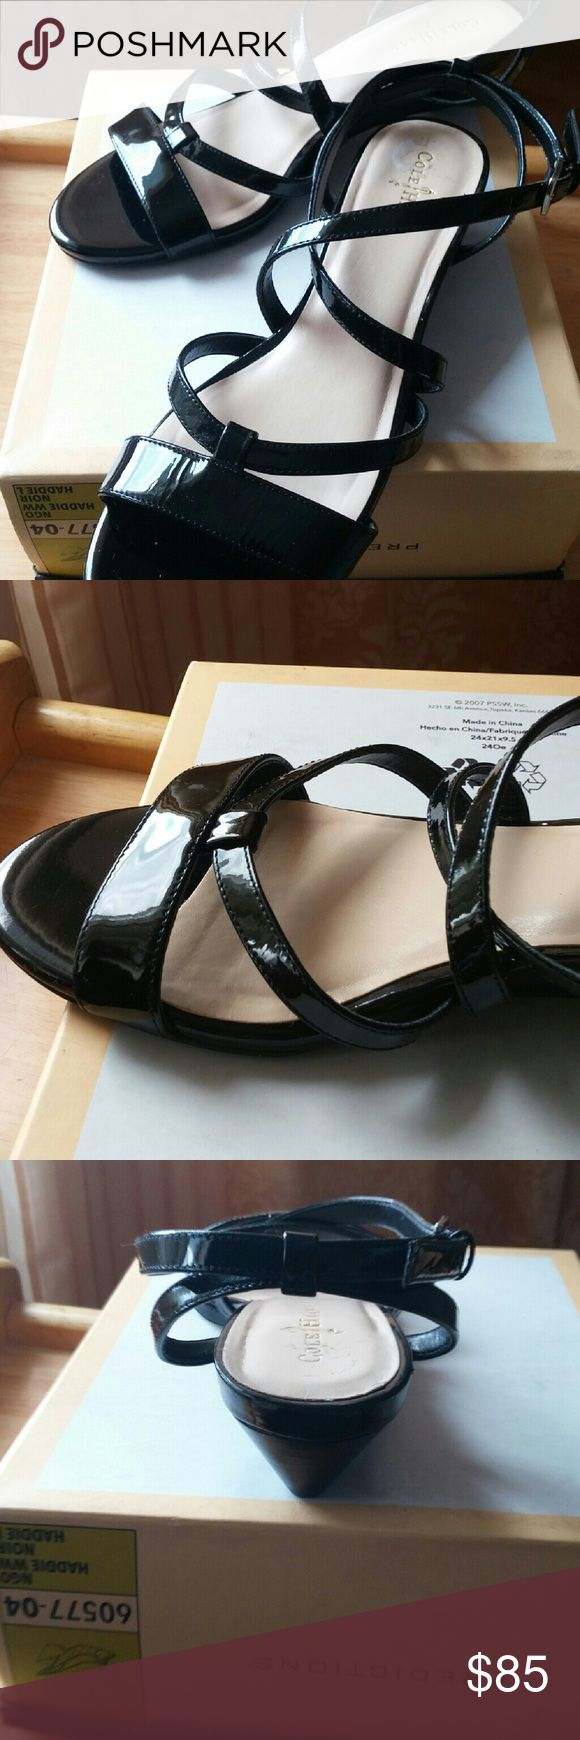 "Cole Haan black leather wedge sandal BRAND New,never be worn,  all over genuine black  leather . 1.5""  covered wedge Amazing!!! High quality , like all shoes from Cole Haan. Cole Haan Shoes Sandals"